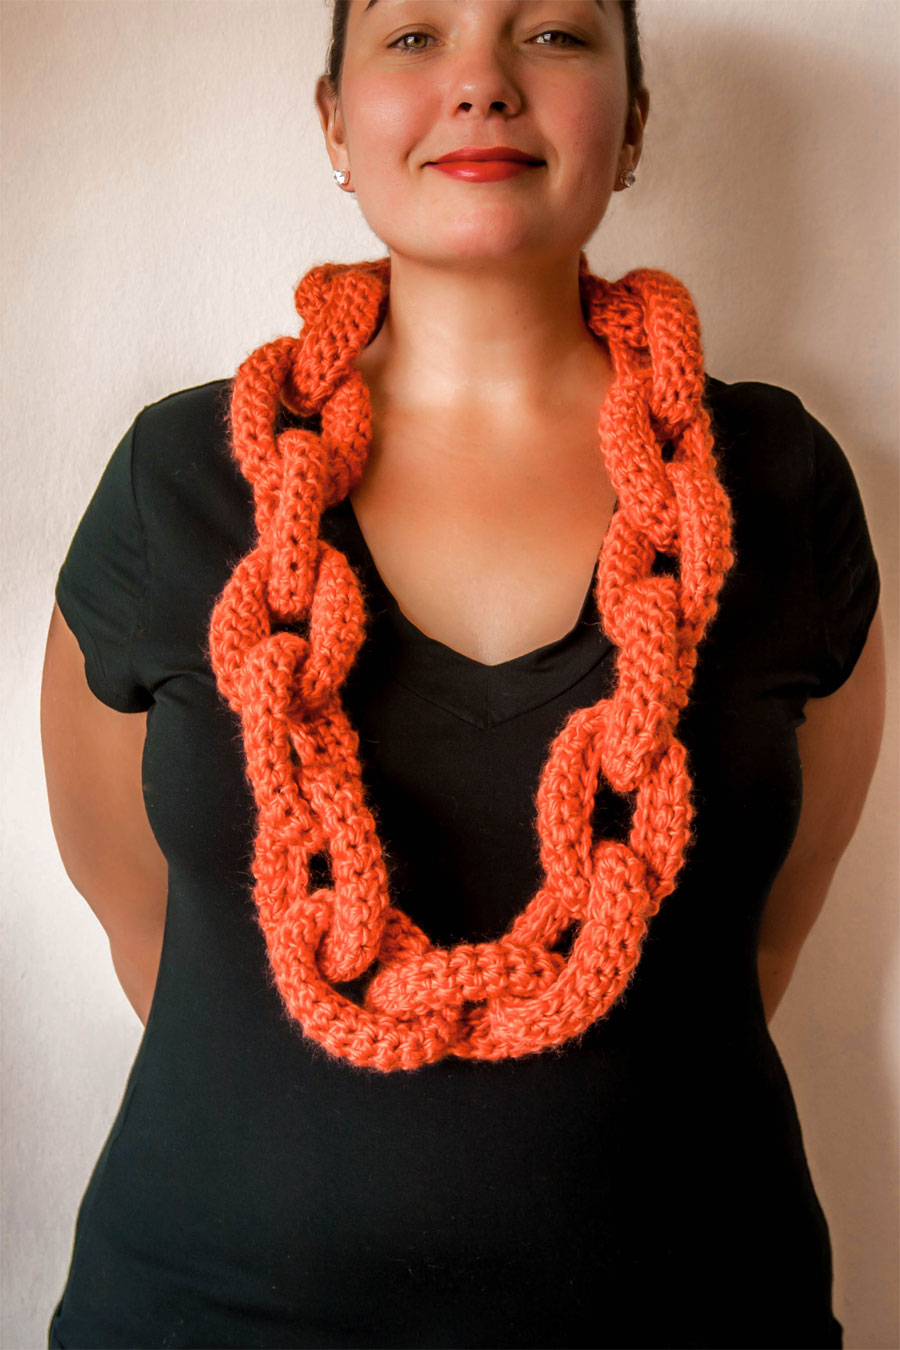 Knitting Pattern For Chain Link Scarf : Chain Link Scarf KNITS FOR LIFE